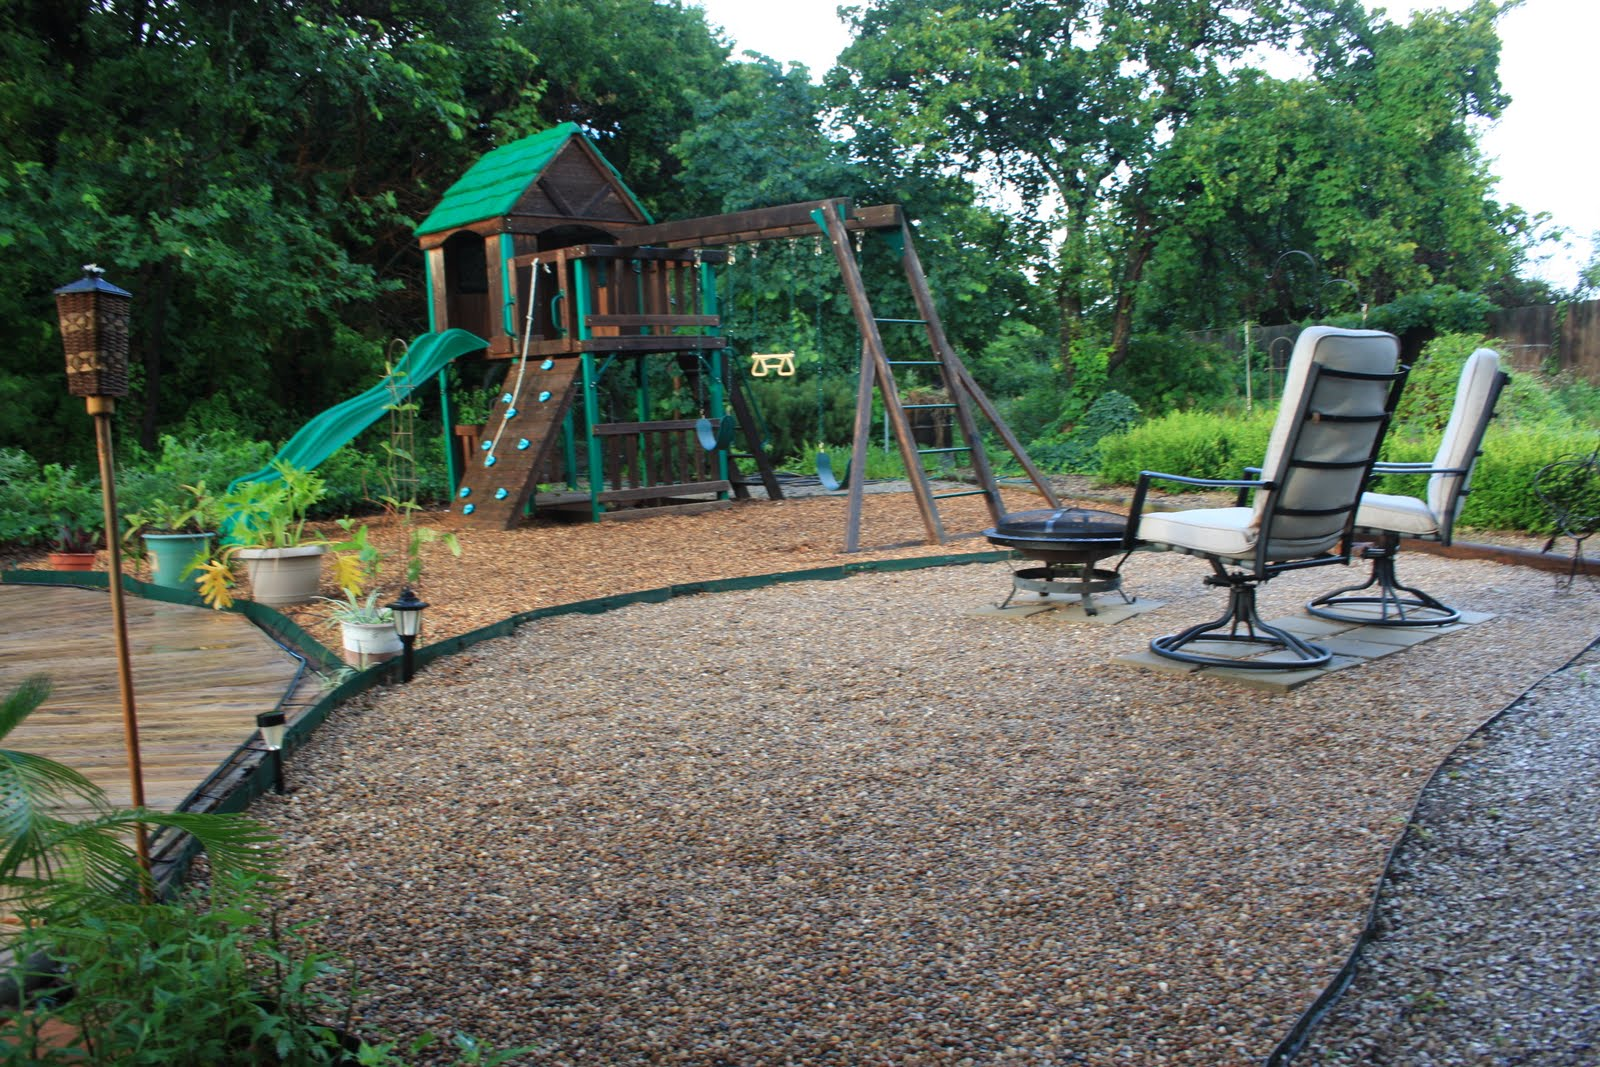 put down 3 yards of playground mulch and 1 yard of river rock I had